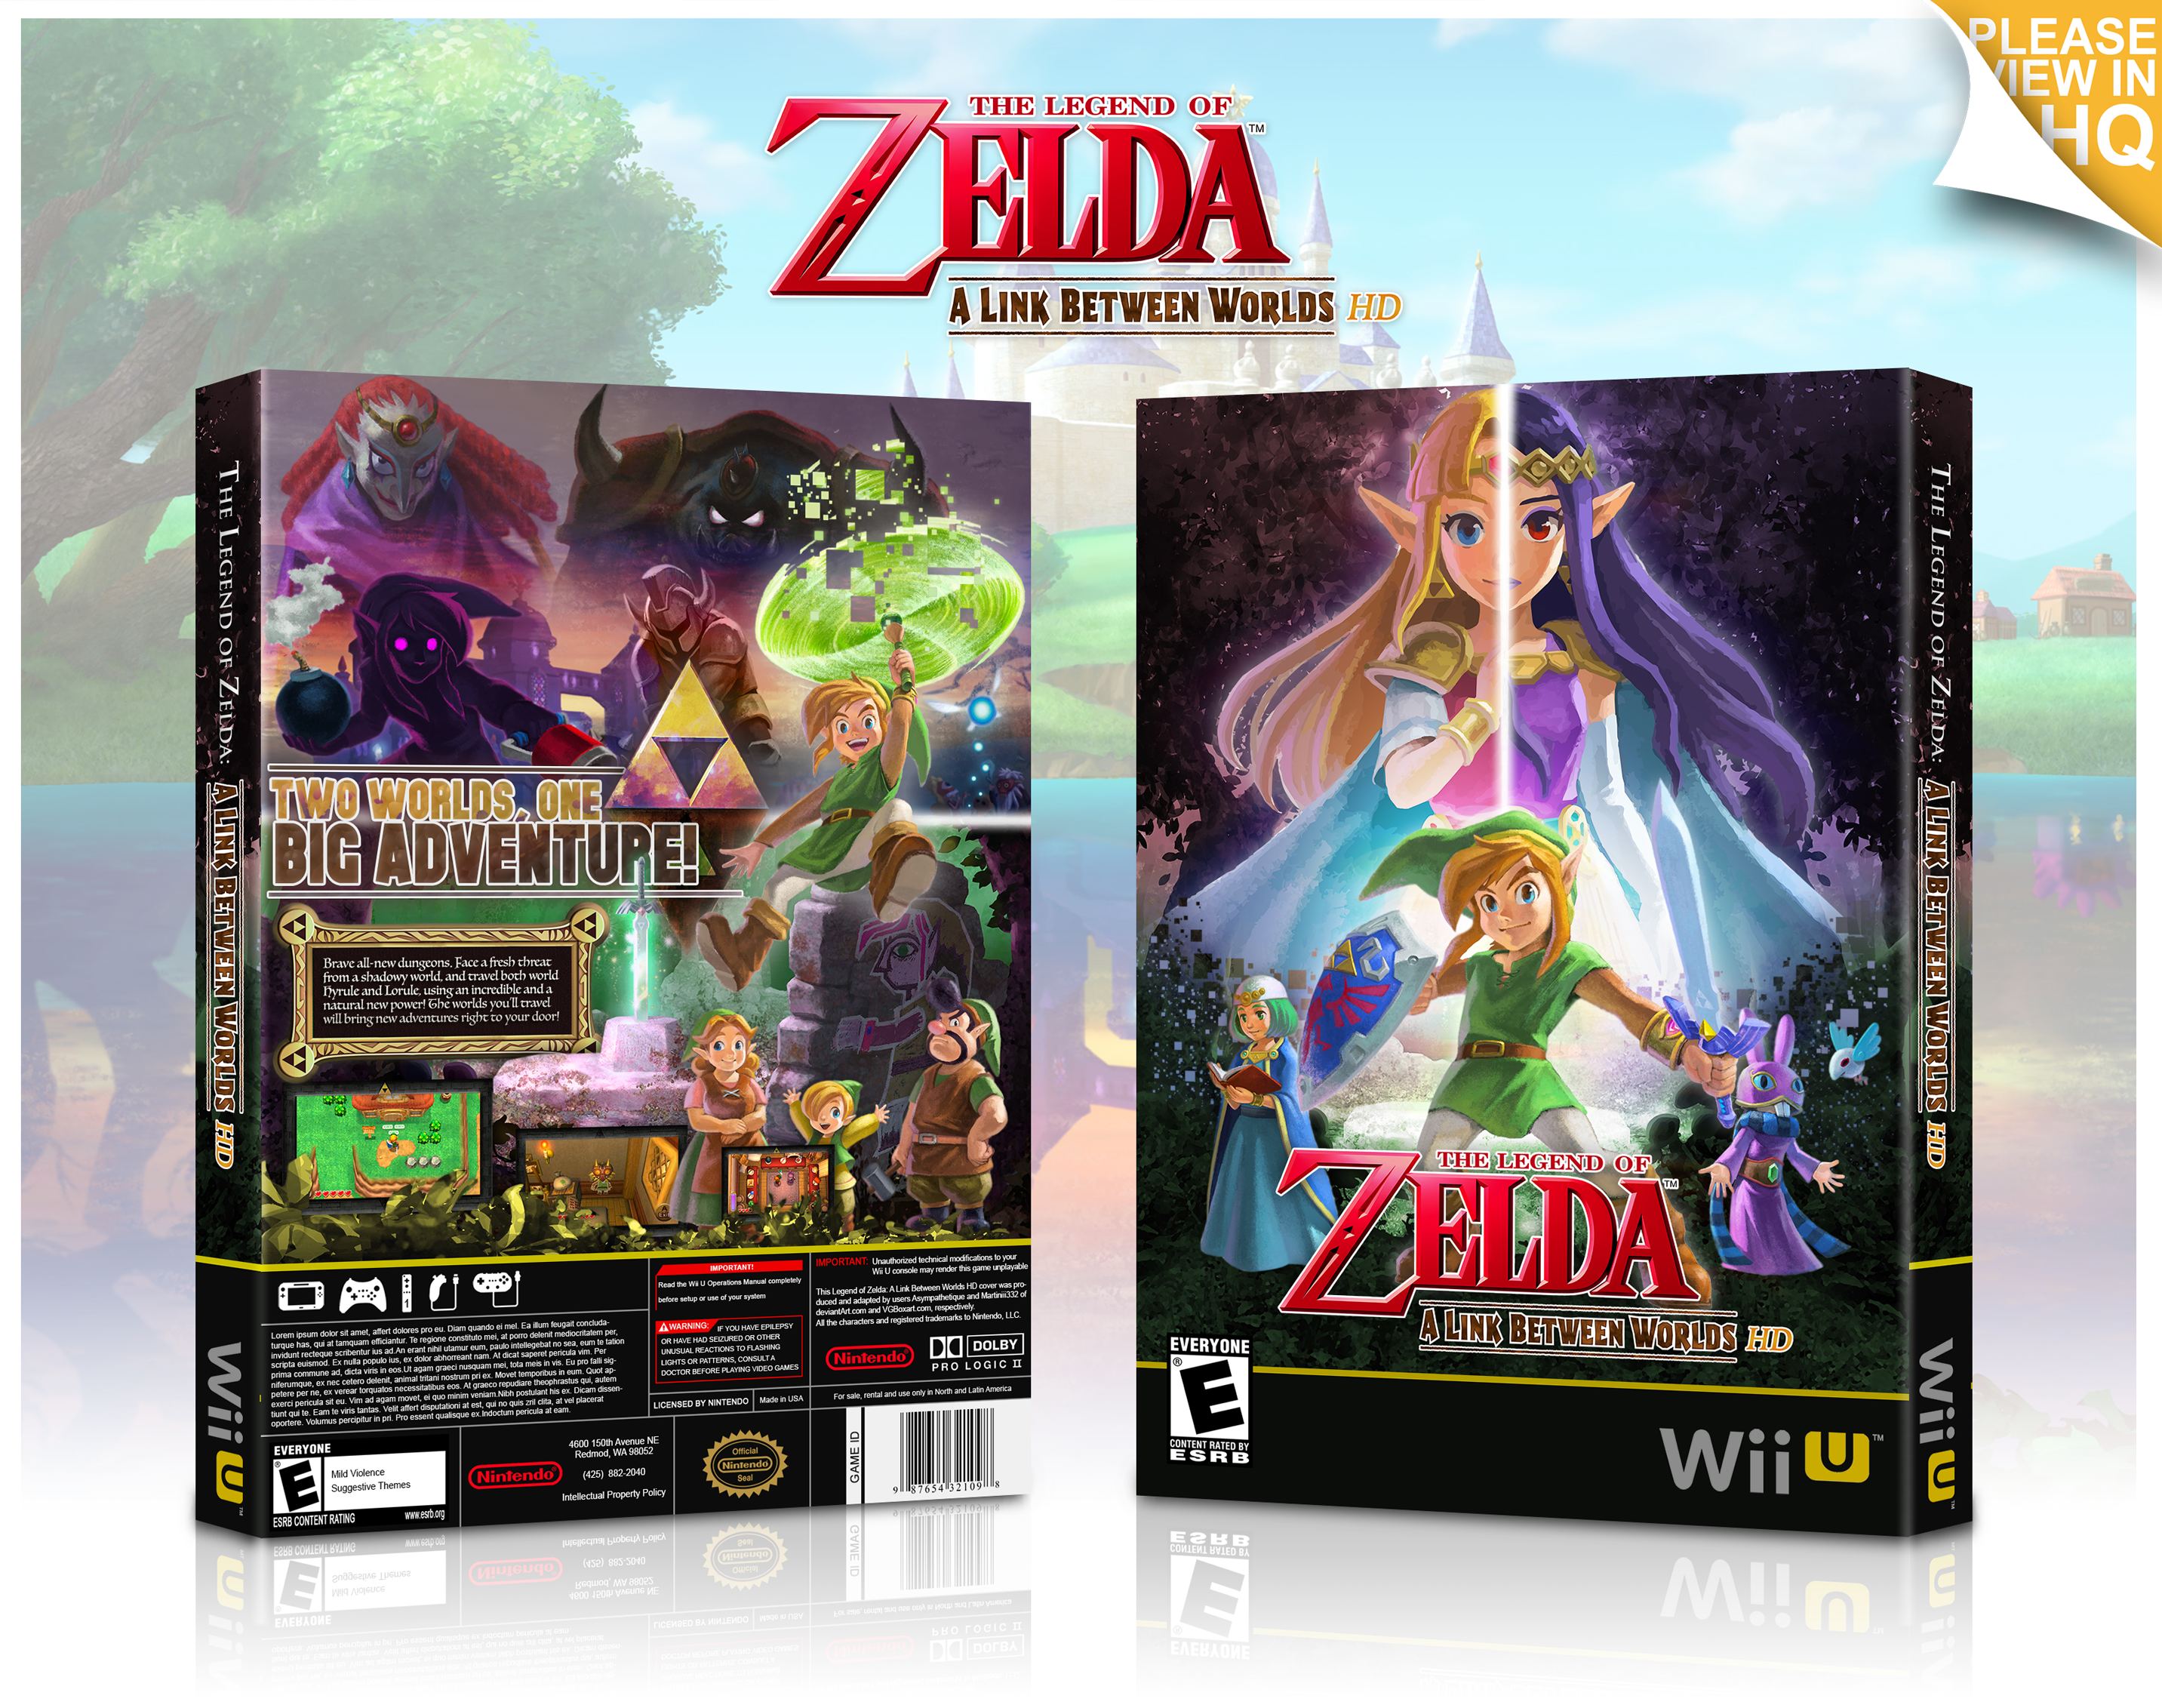 The Legend of Zelda: A Link Between Worlds HD box cover